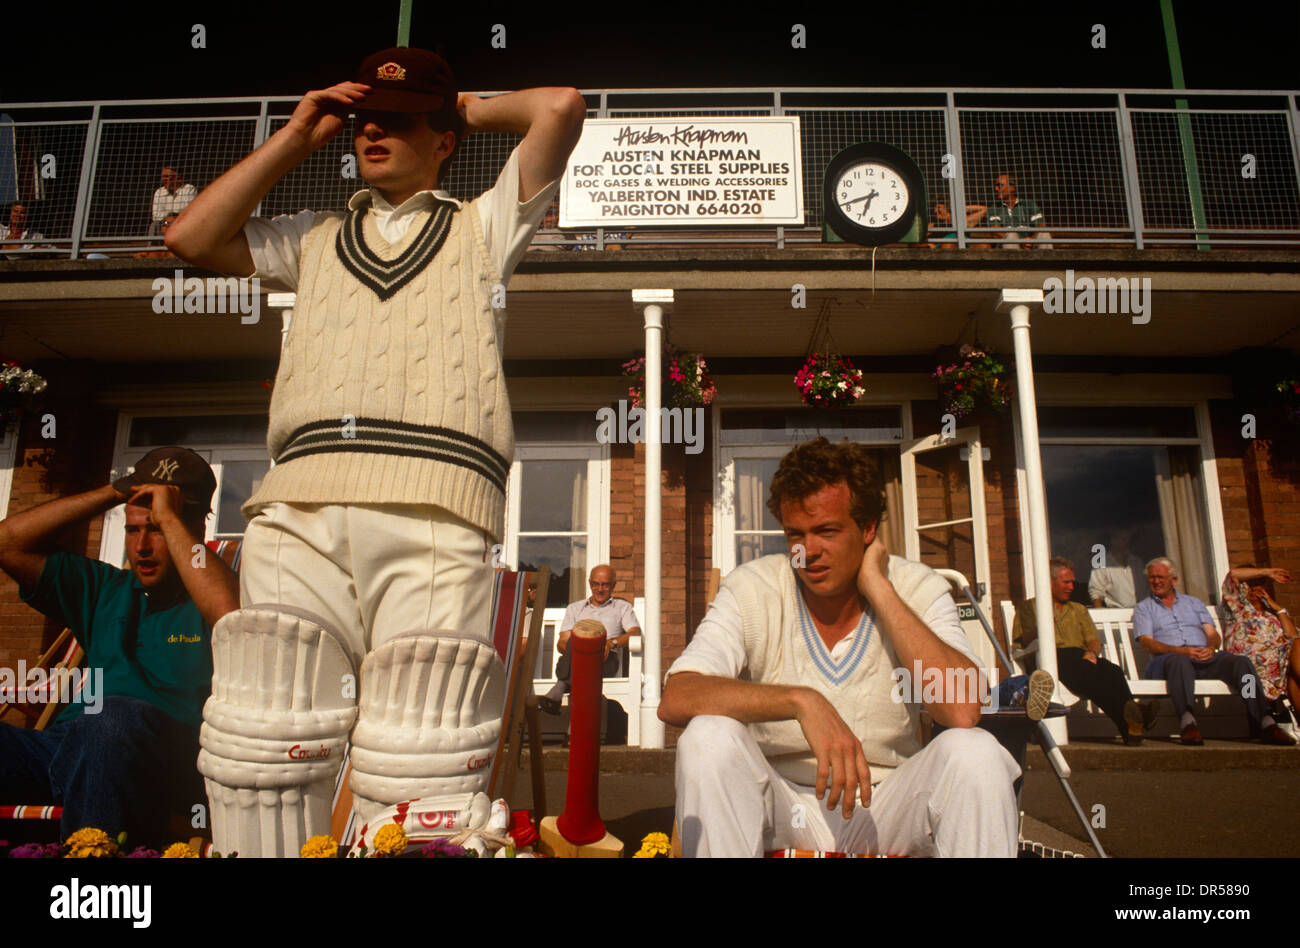 A batsman prepares to walk on to the field during a local club match in Paignton, UK. Stock Photo